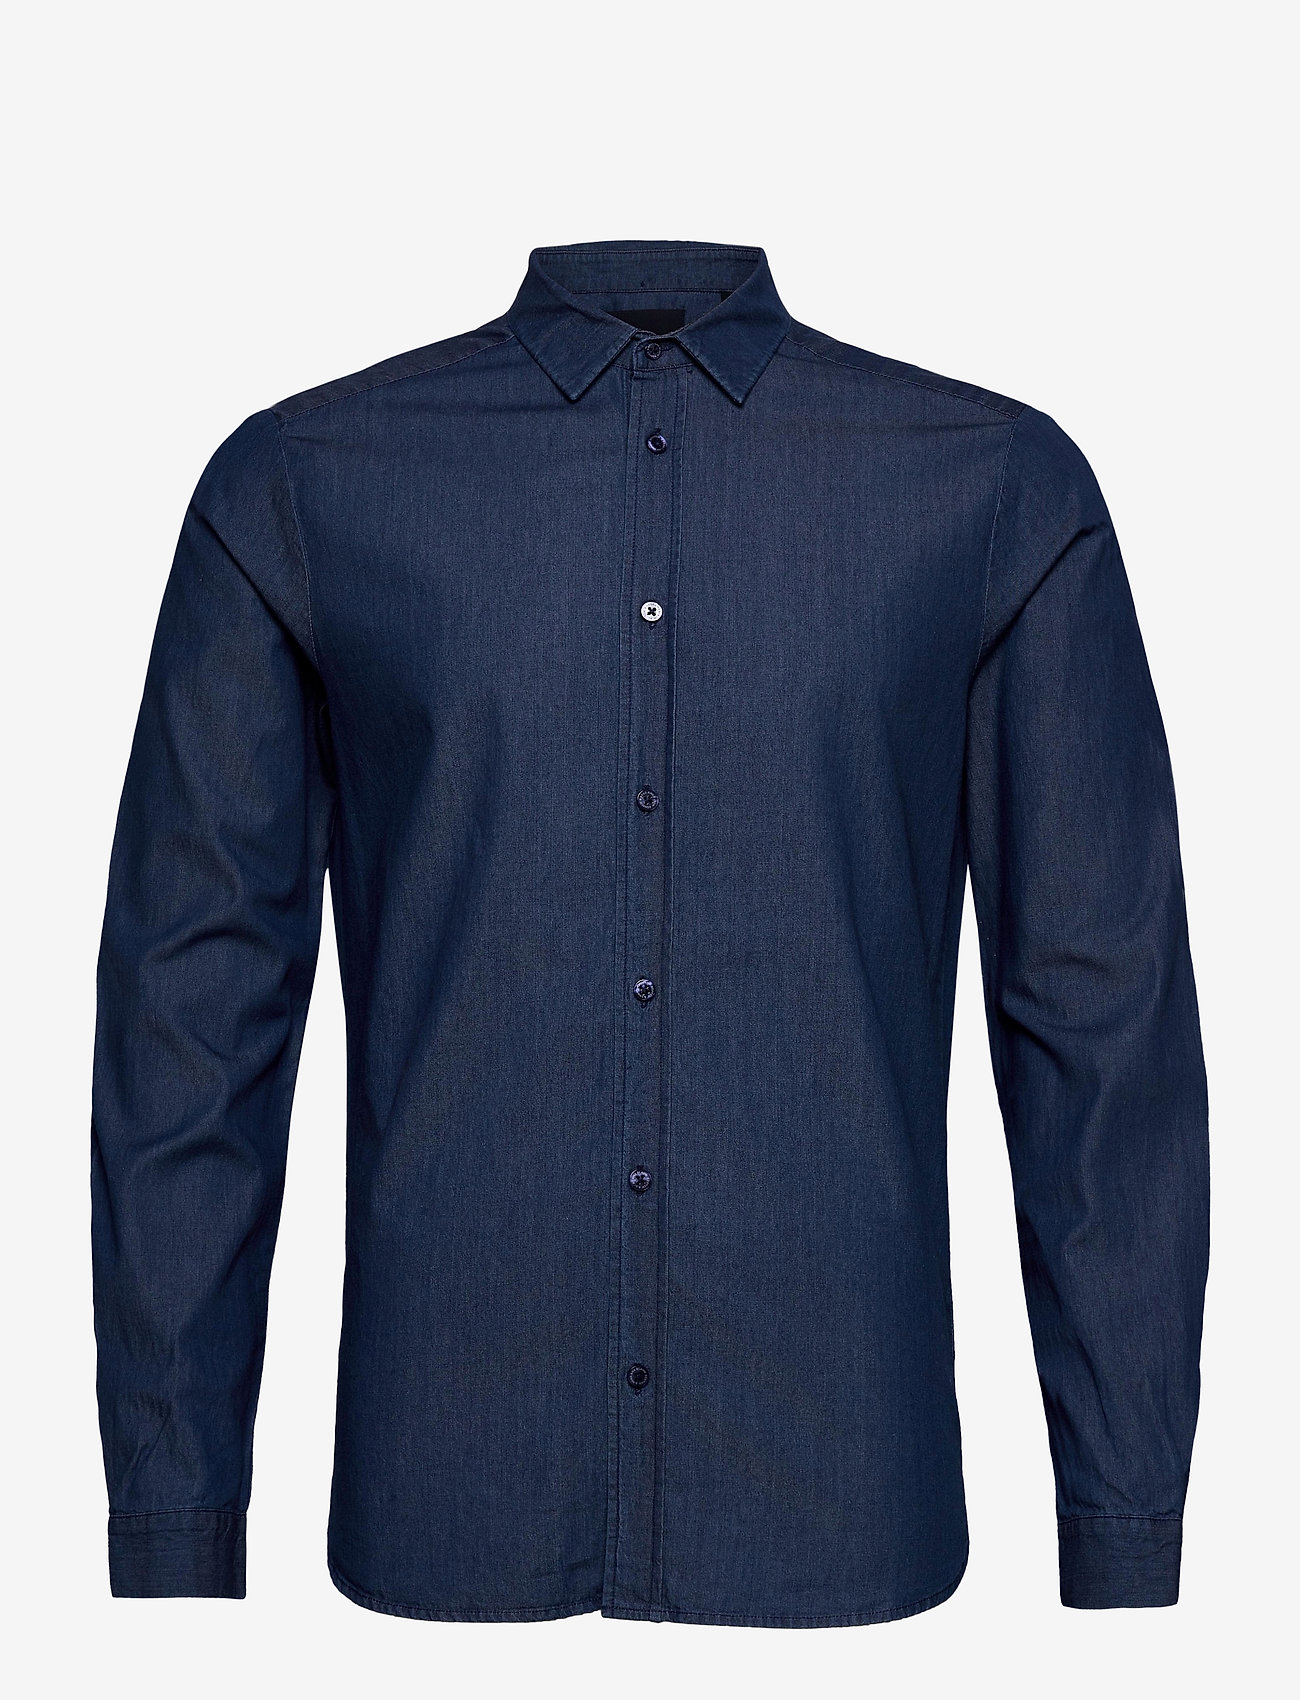 Scotch & Soda - Clean denim tailor shirt - basic shirts - indigo - 0